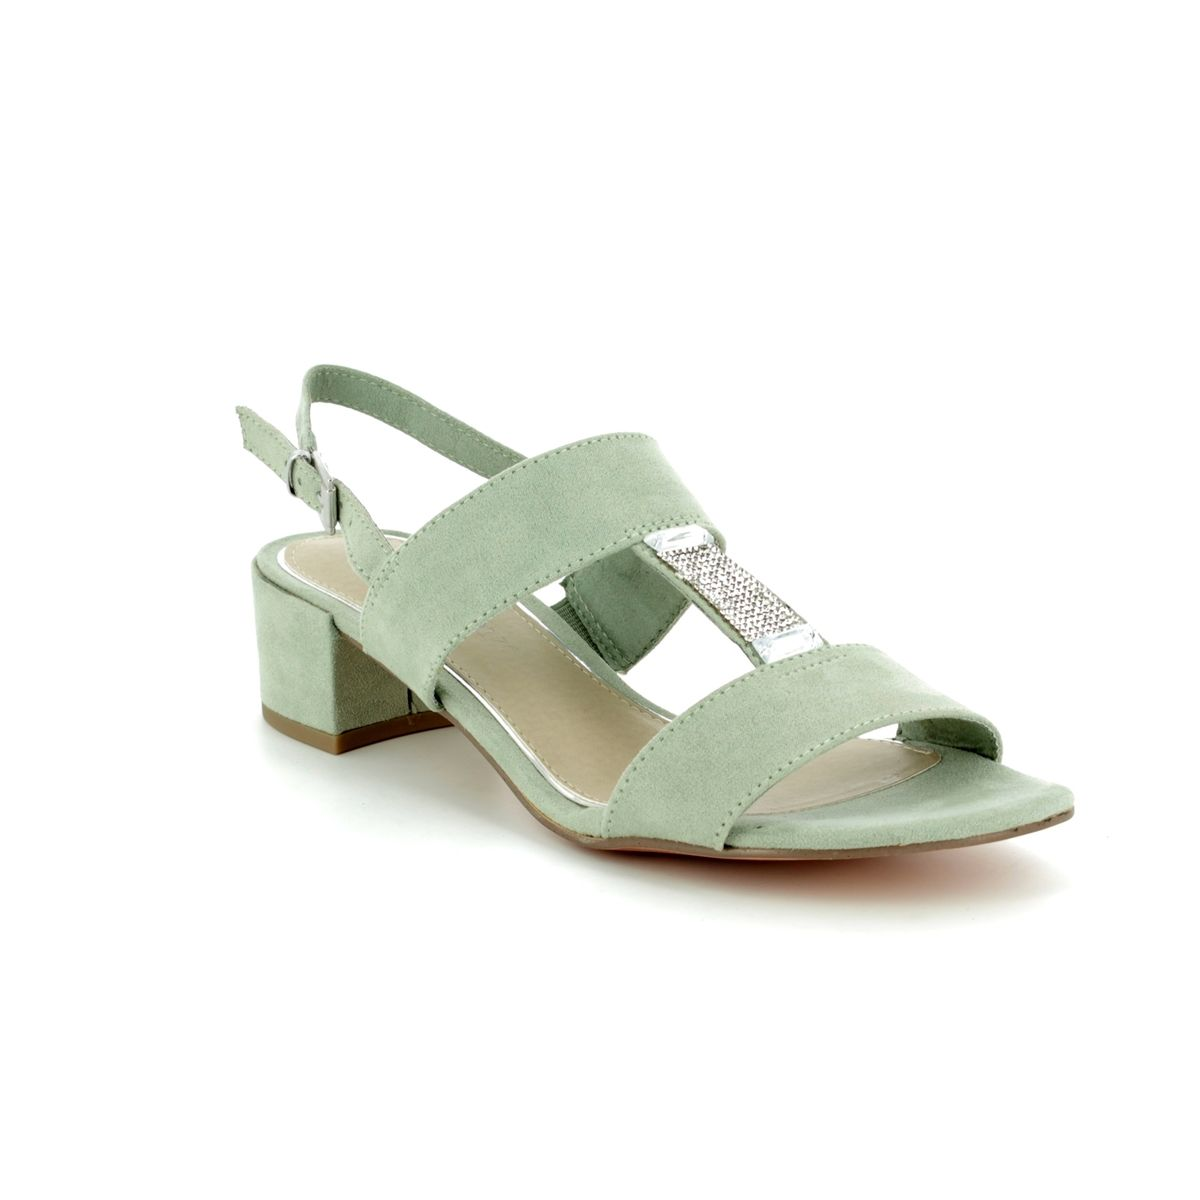 c58bce0dd5a Marco Tozzi Heeled Sandals - Mint green - 28202 20 768 HECHO 81